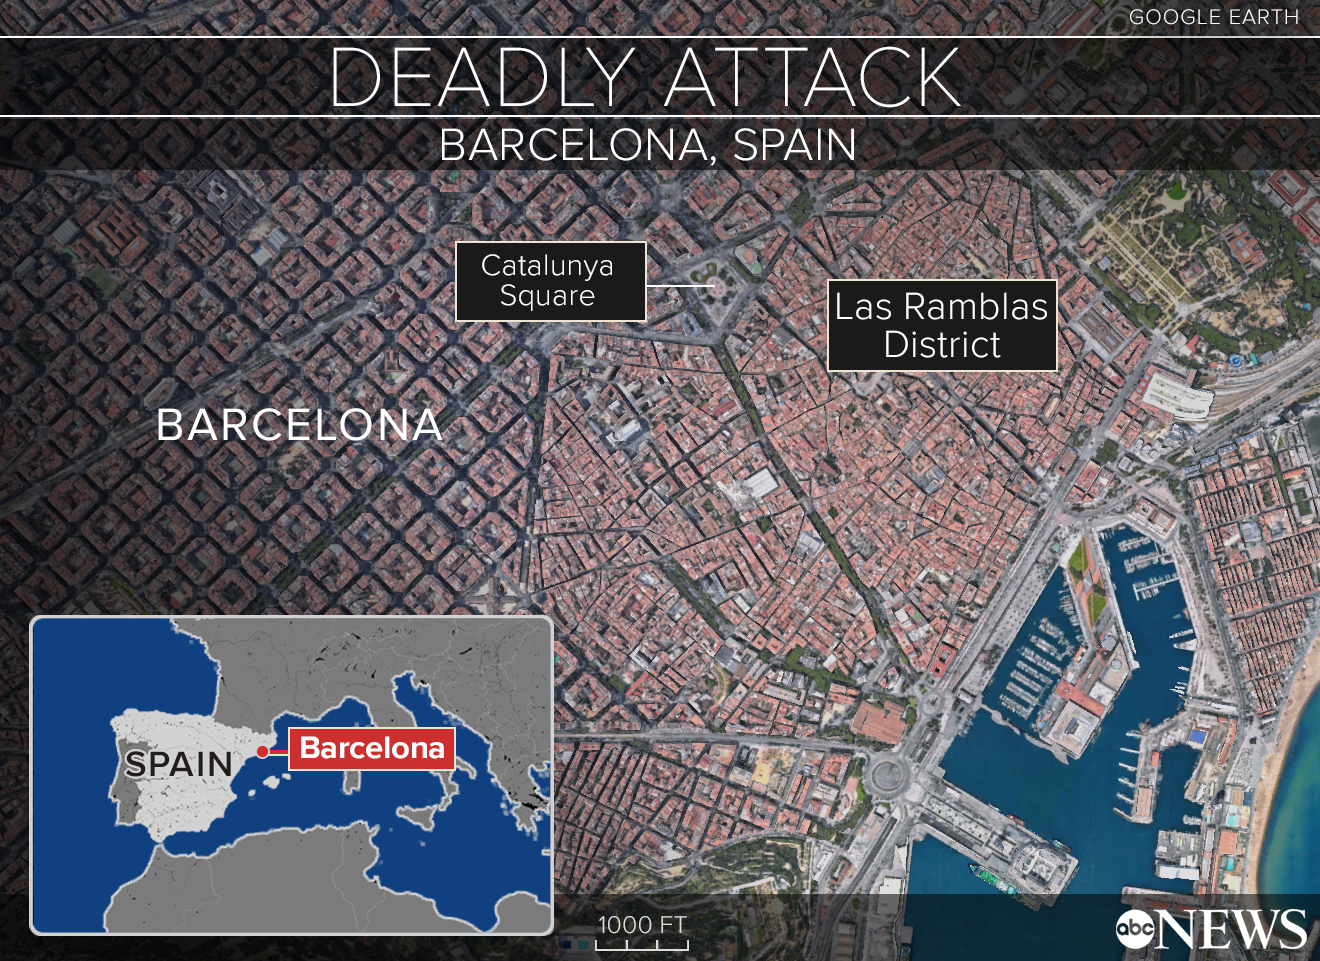 ISIS claims responsibility for deadly Barcelona attack